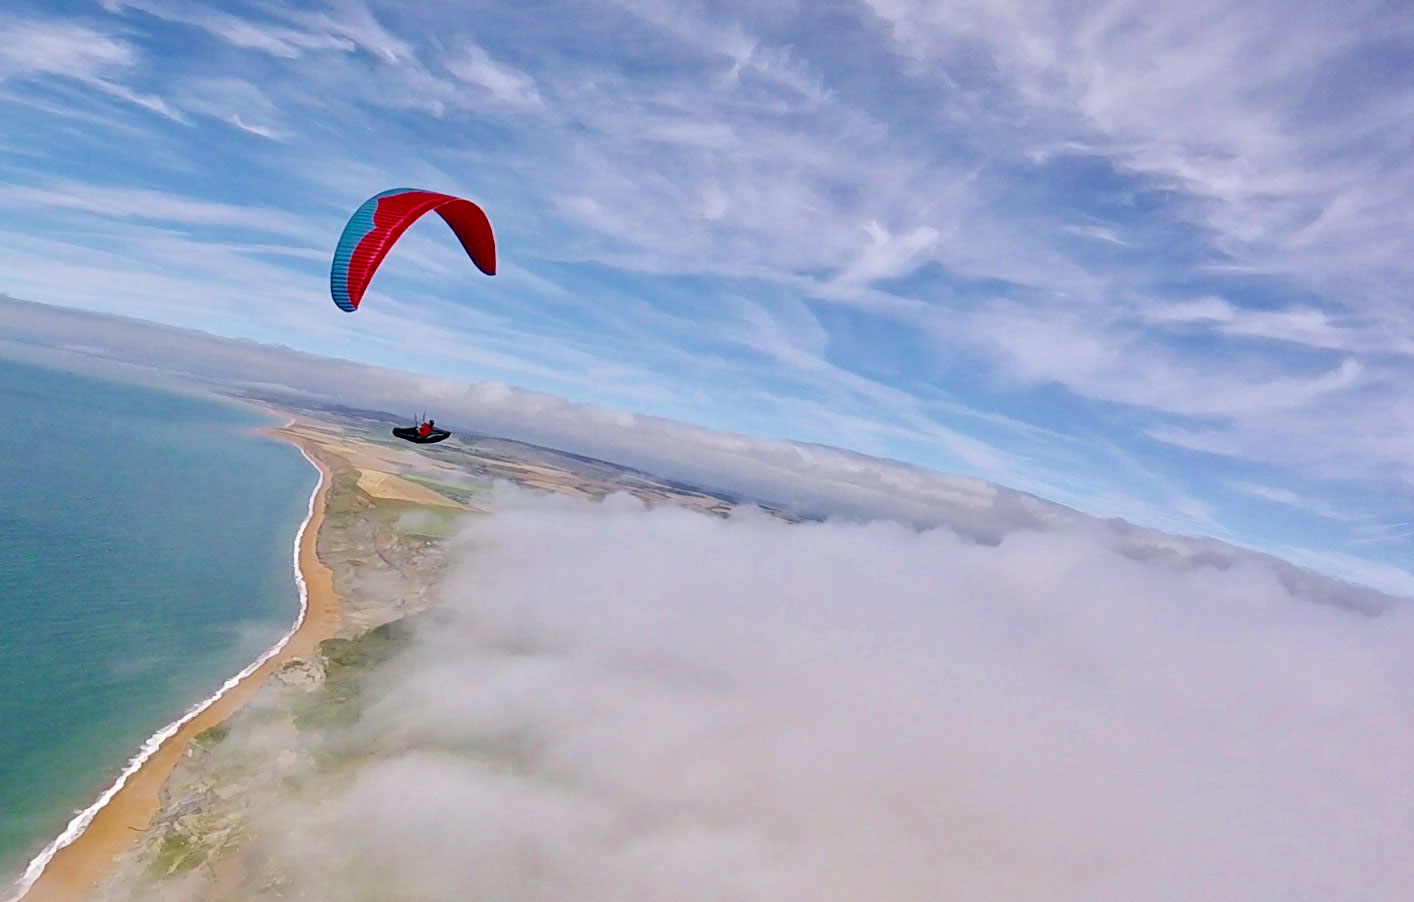 Holiday rental Cottage in Shorwell - Richard flying over Atherfield bay.